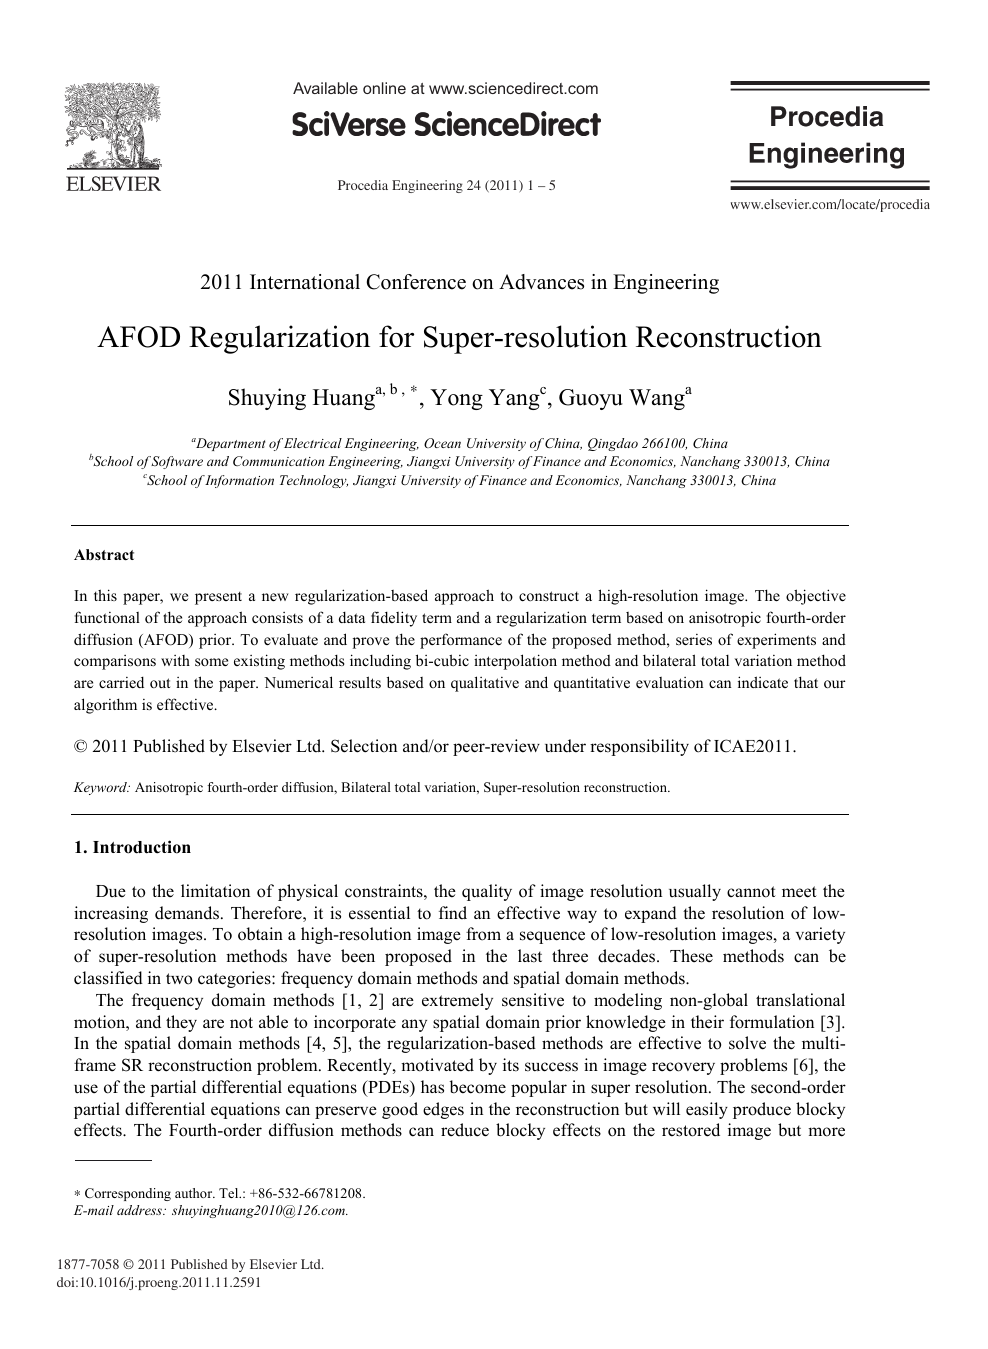 AFOD Regularization for Super-Resolution Reconstruction – topic of